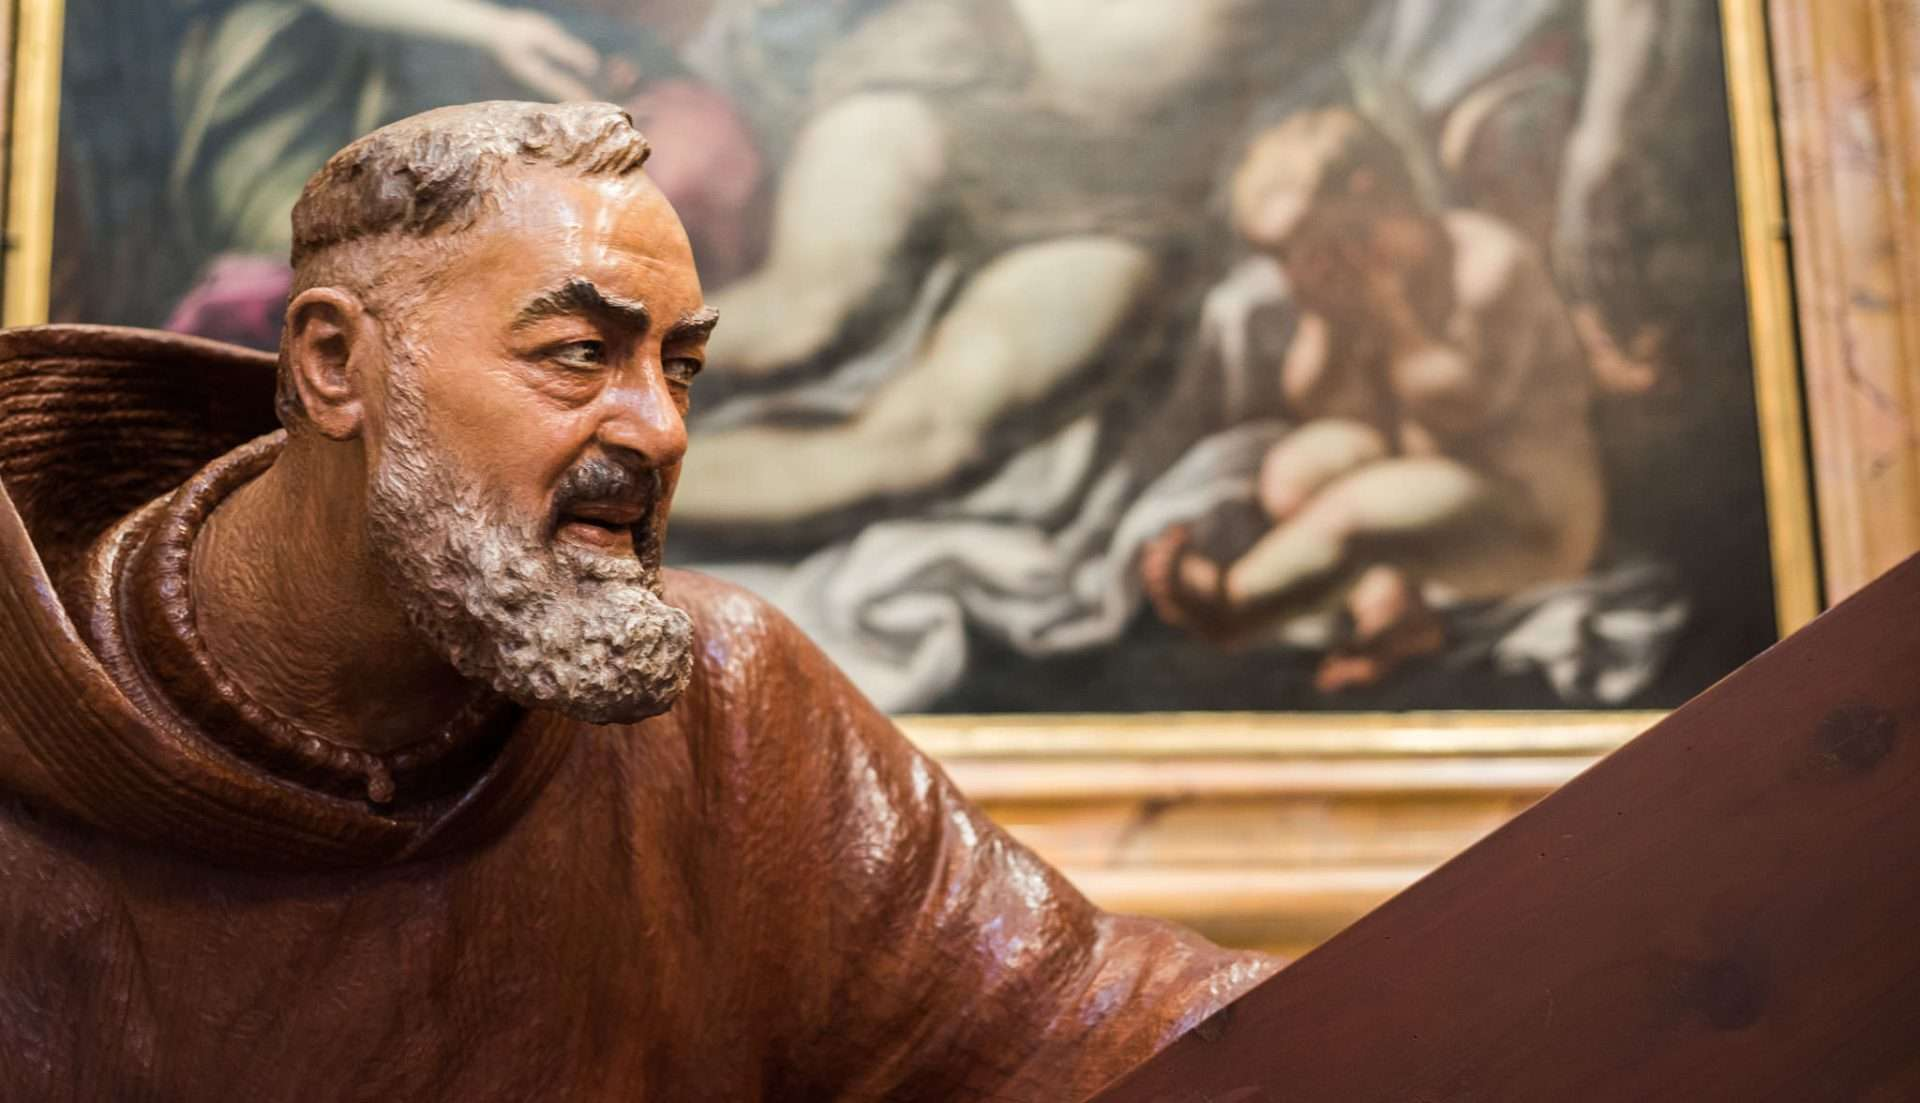 He was shot dead but raised to life by St Pio shares his vision of Heaven